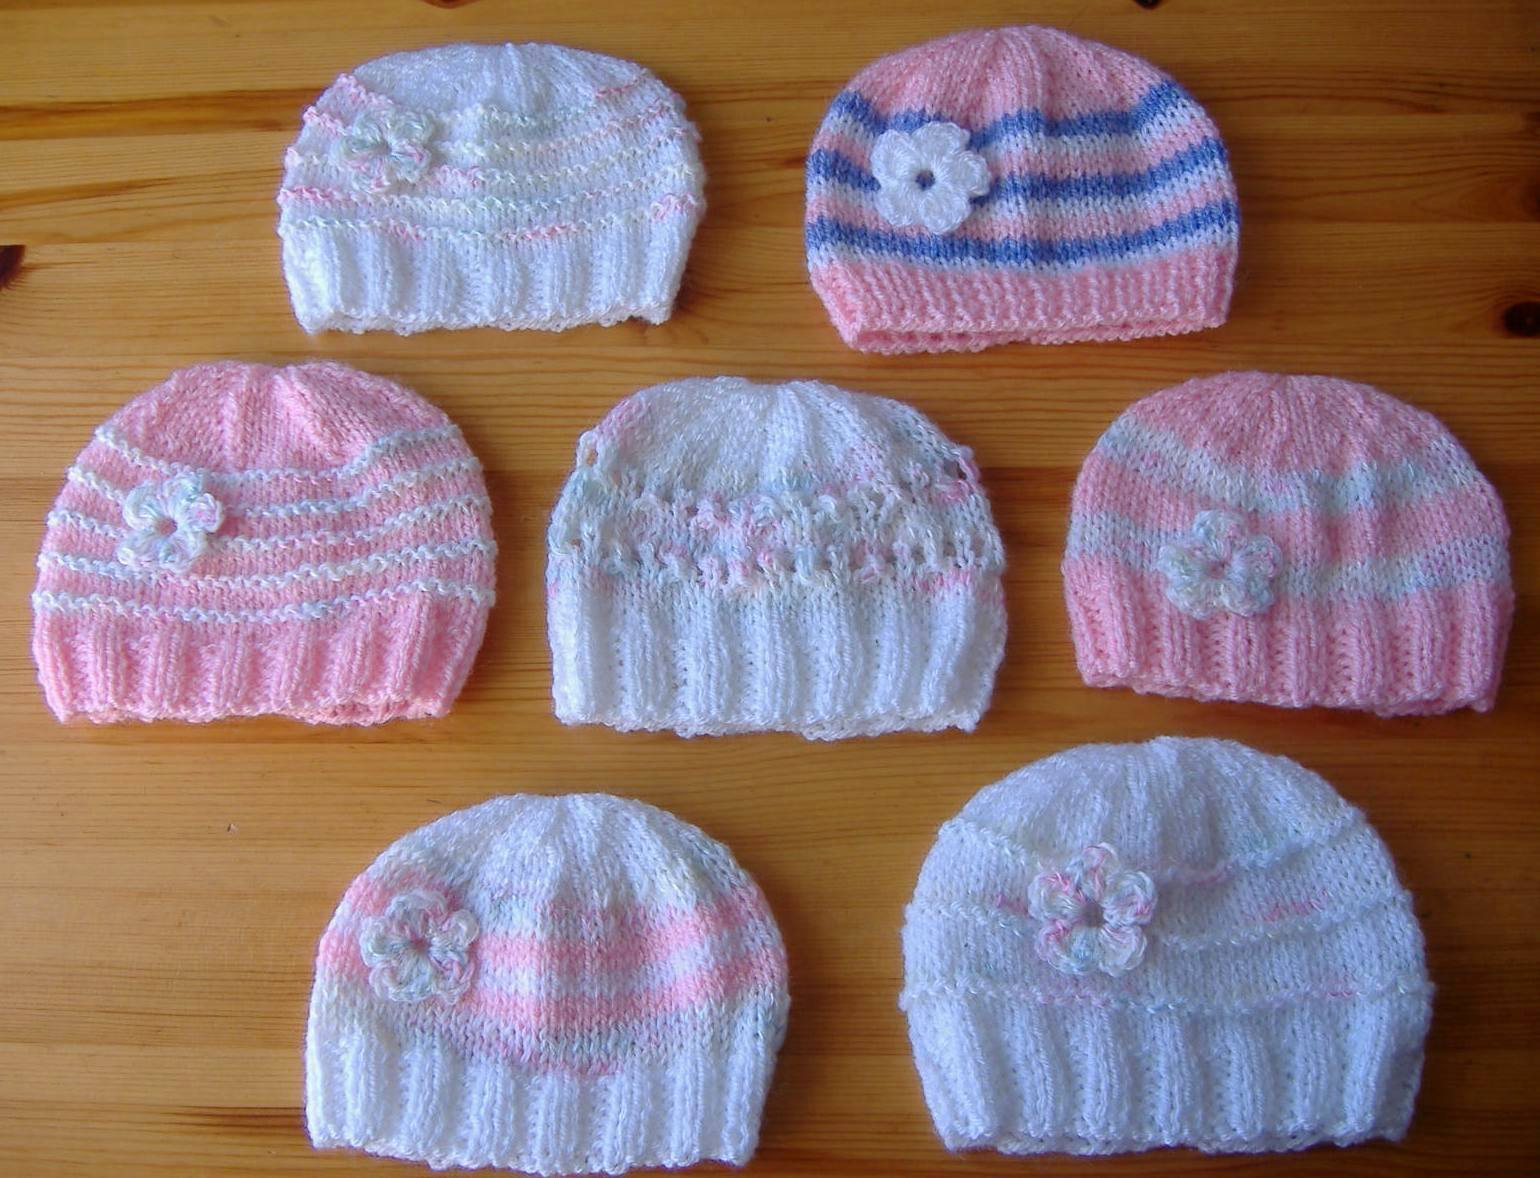 9a46c4889 clearance how to knit a baby hat tutorial uk 1fb95 1a97e